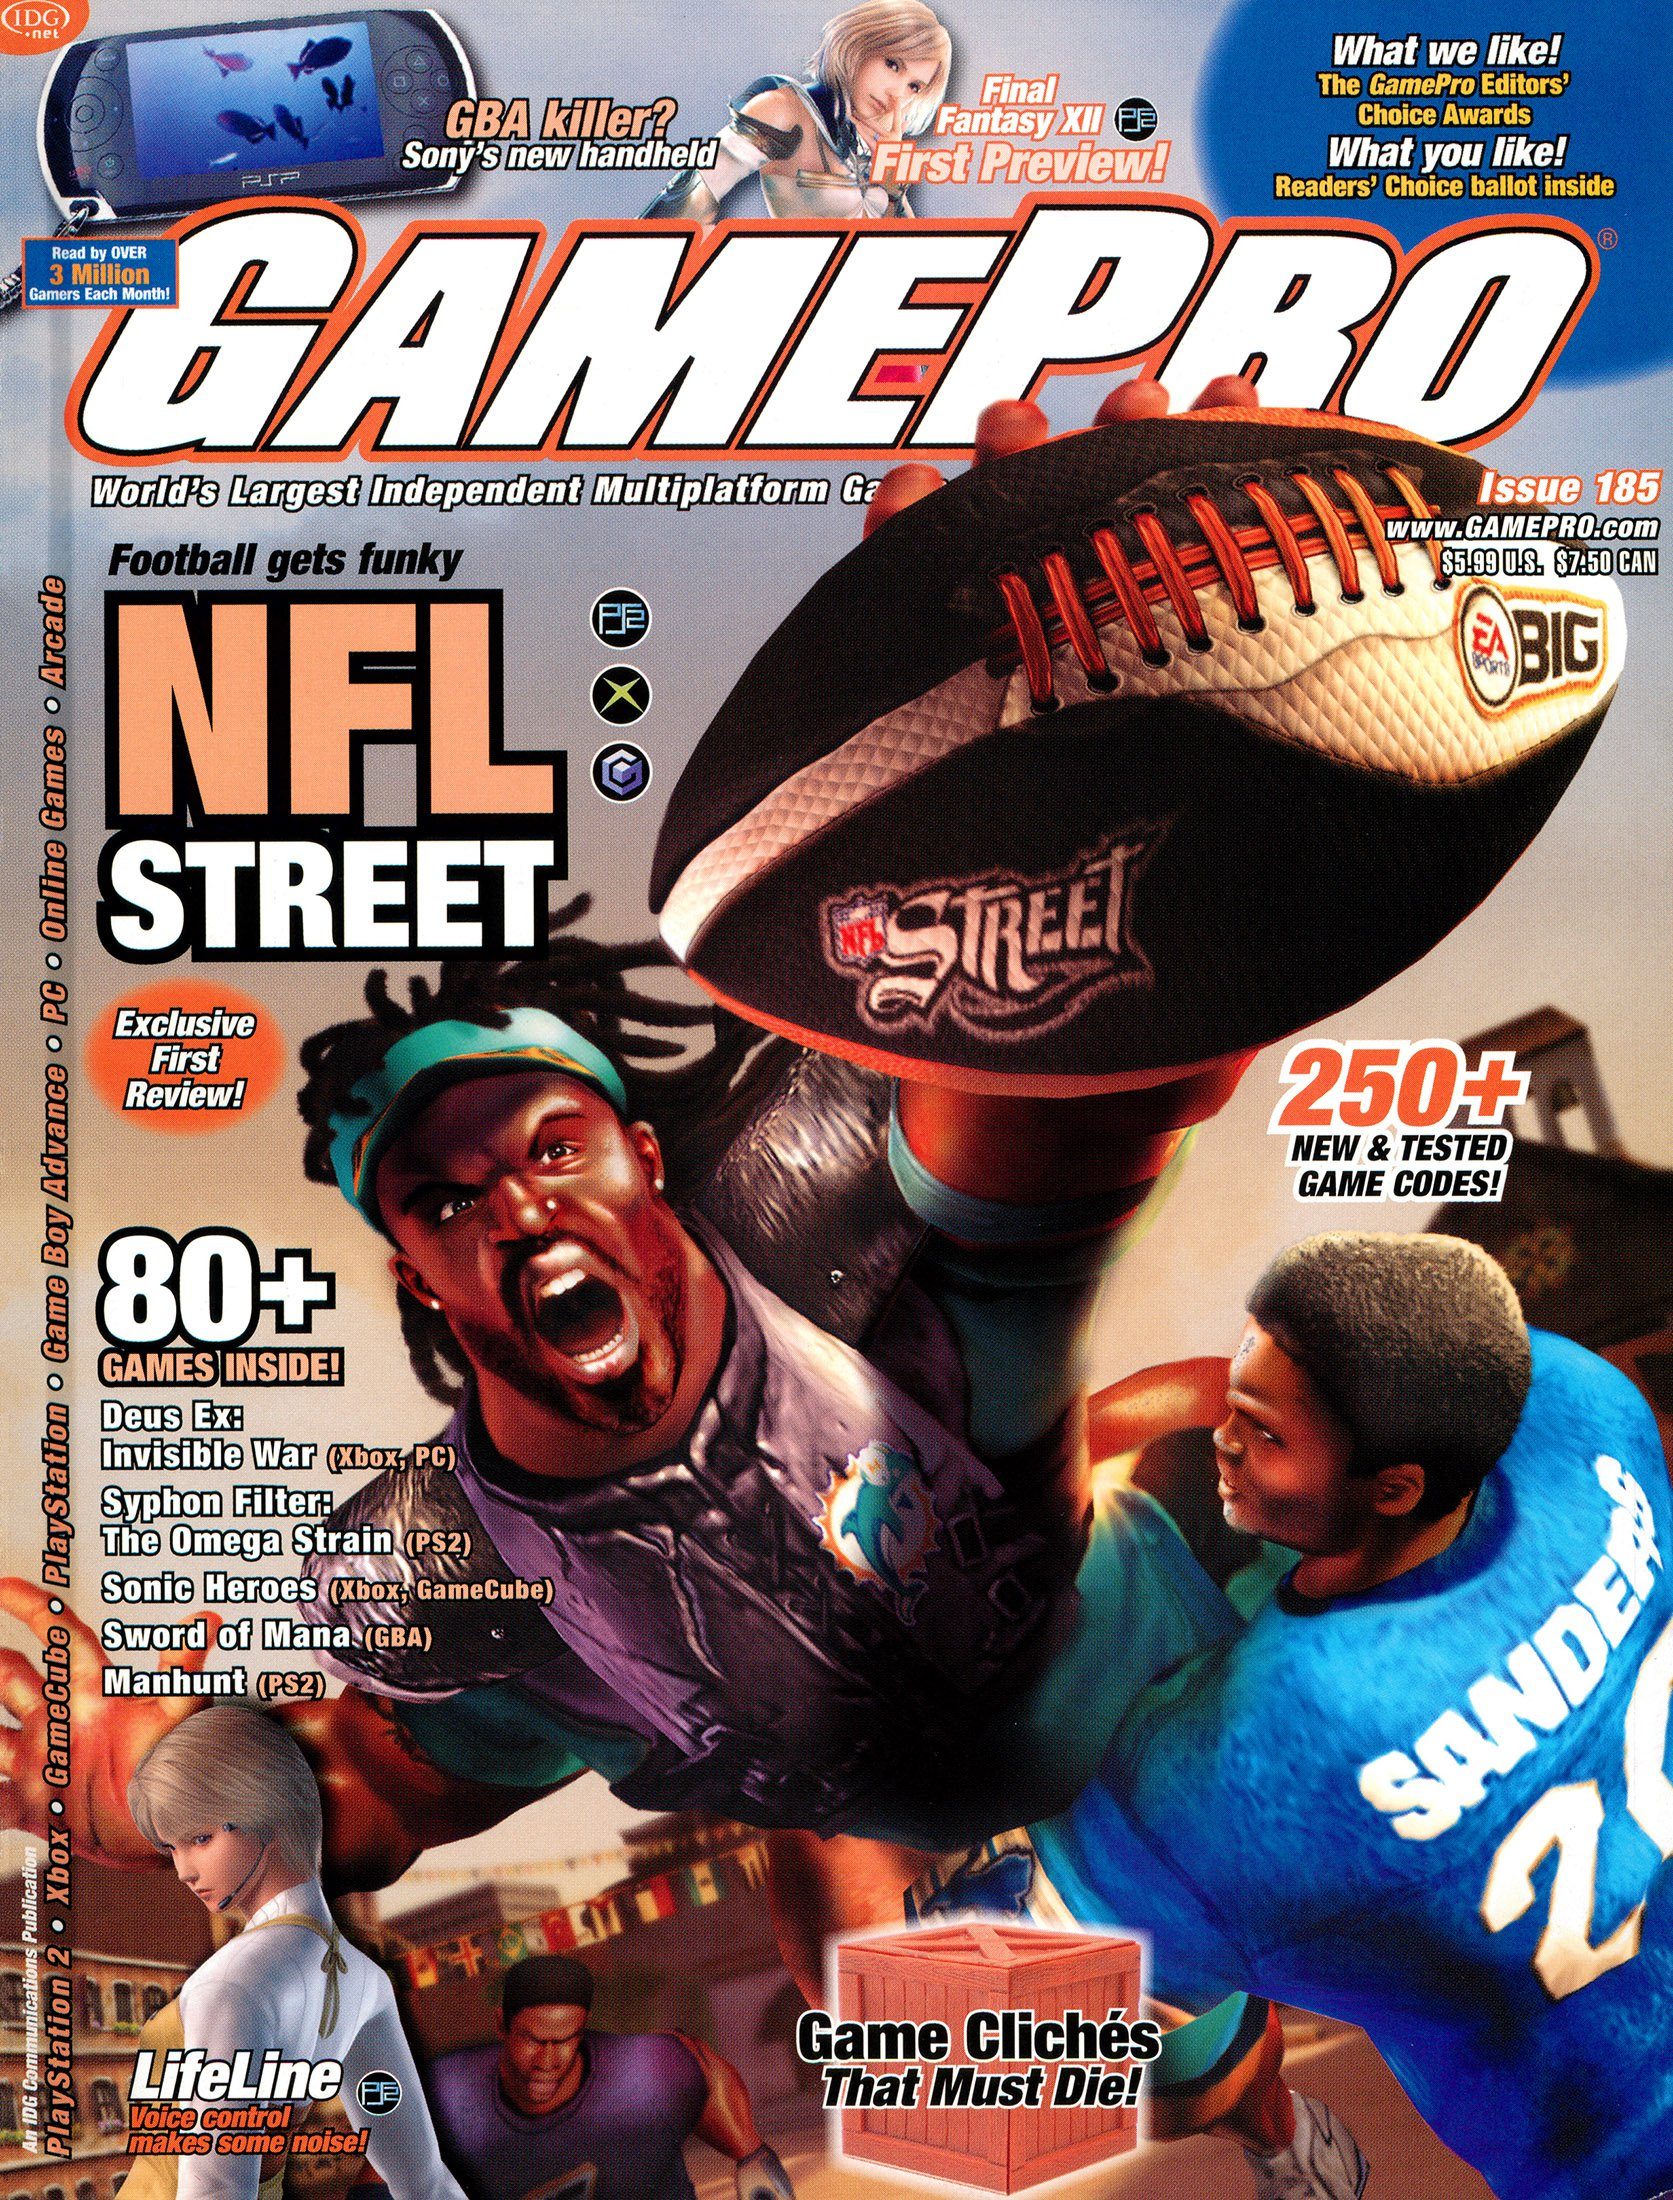 GamePro Issue 185 (February 2004)